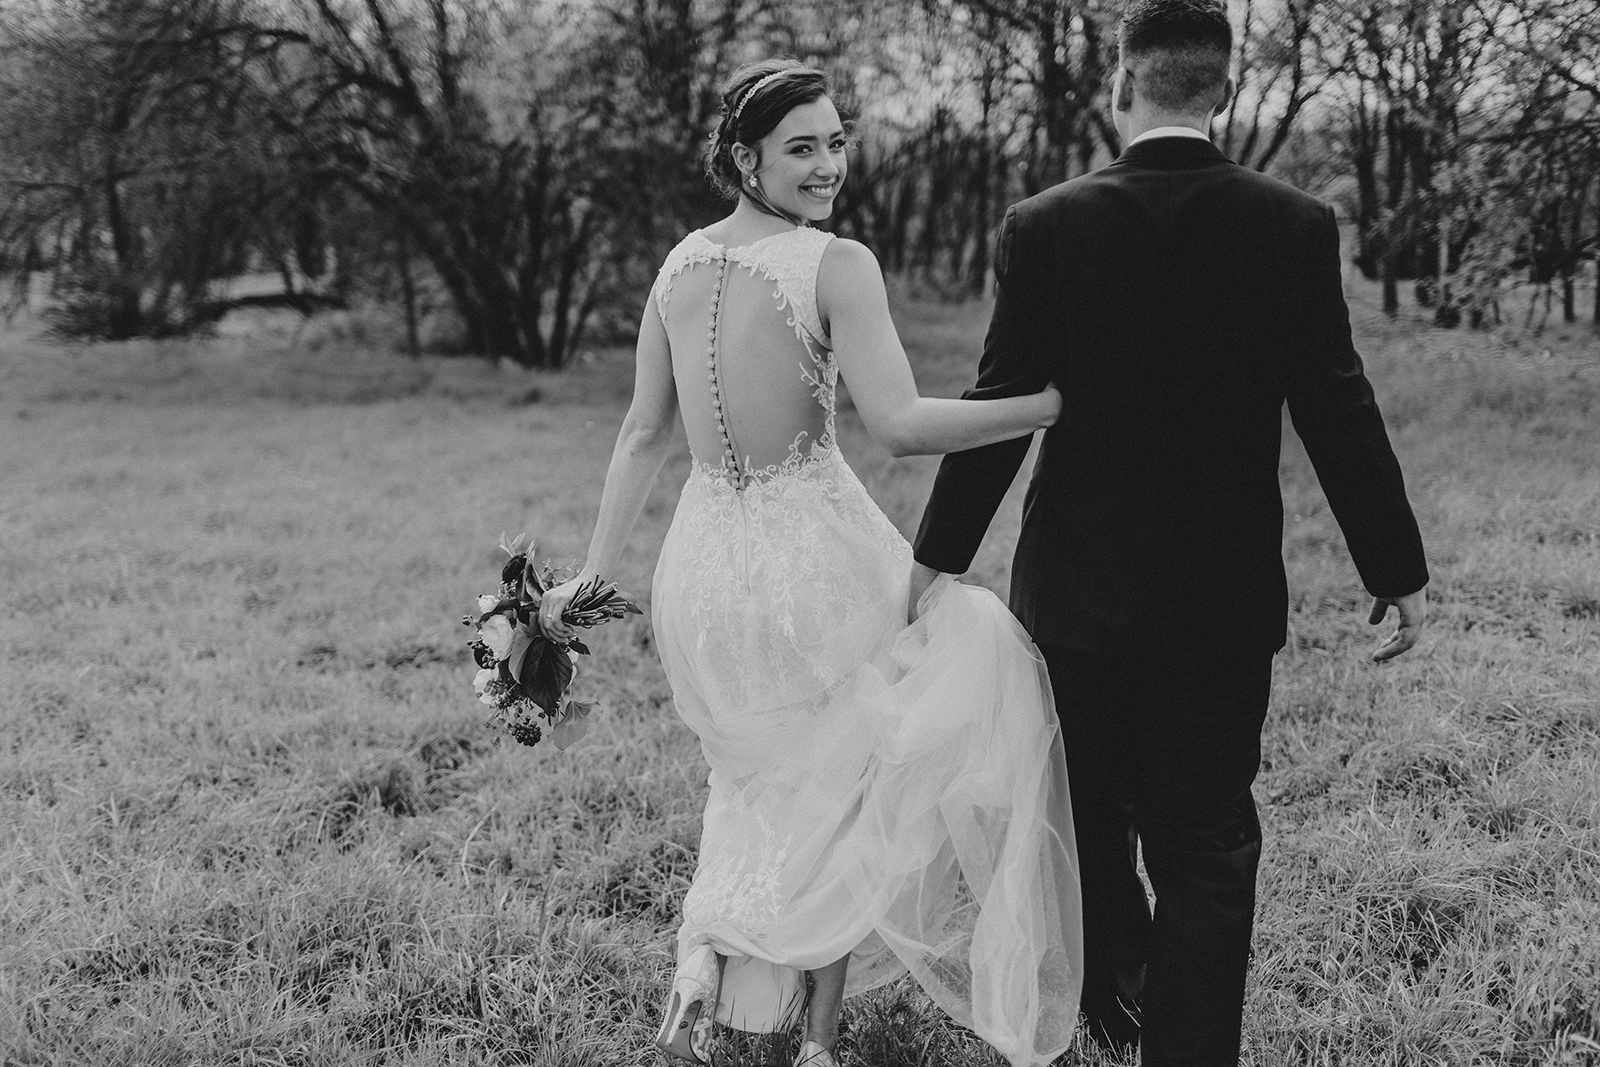 Bride and groom formals at a beautiful outdoor wedding in Austin Texas.